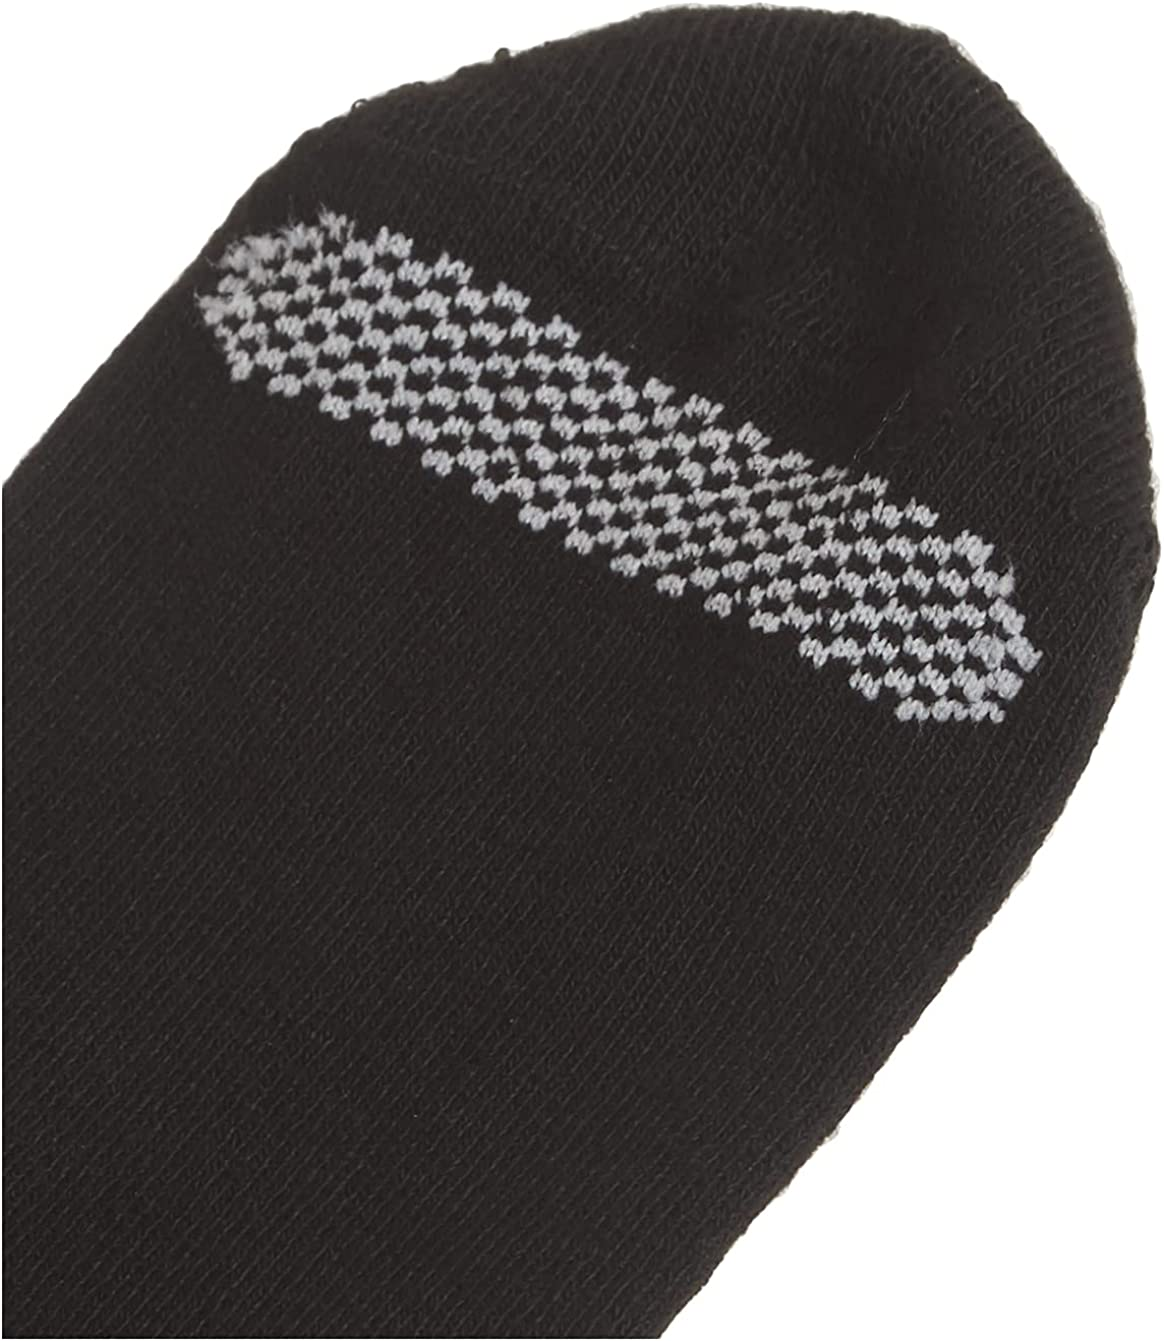 Hanes Womens Cool Comfort Toe Support Ankle Socks, 6-pair Pack